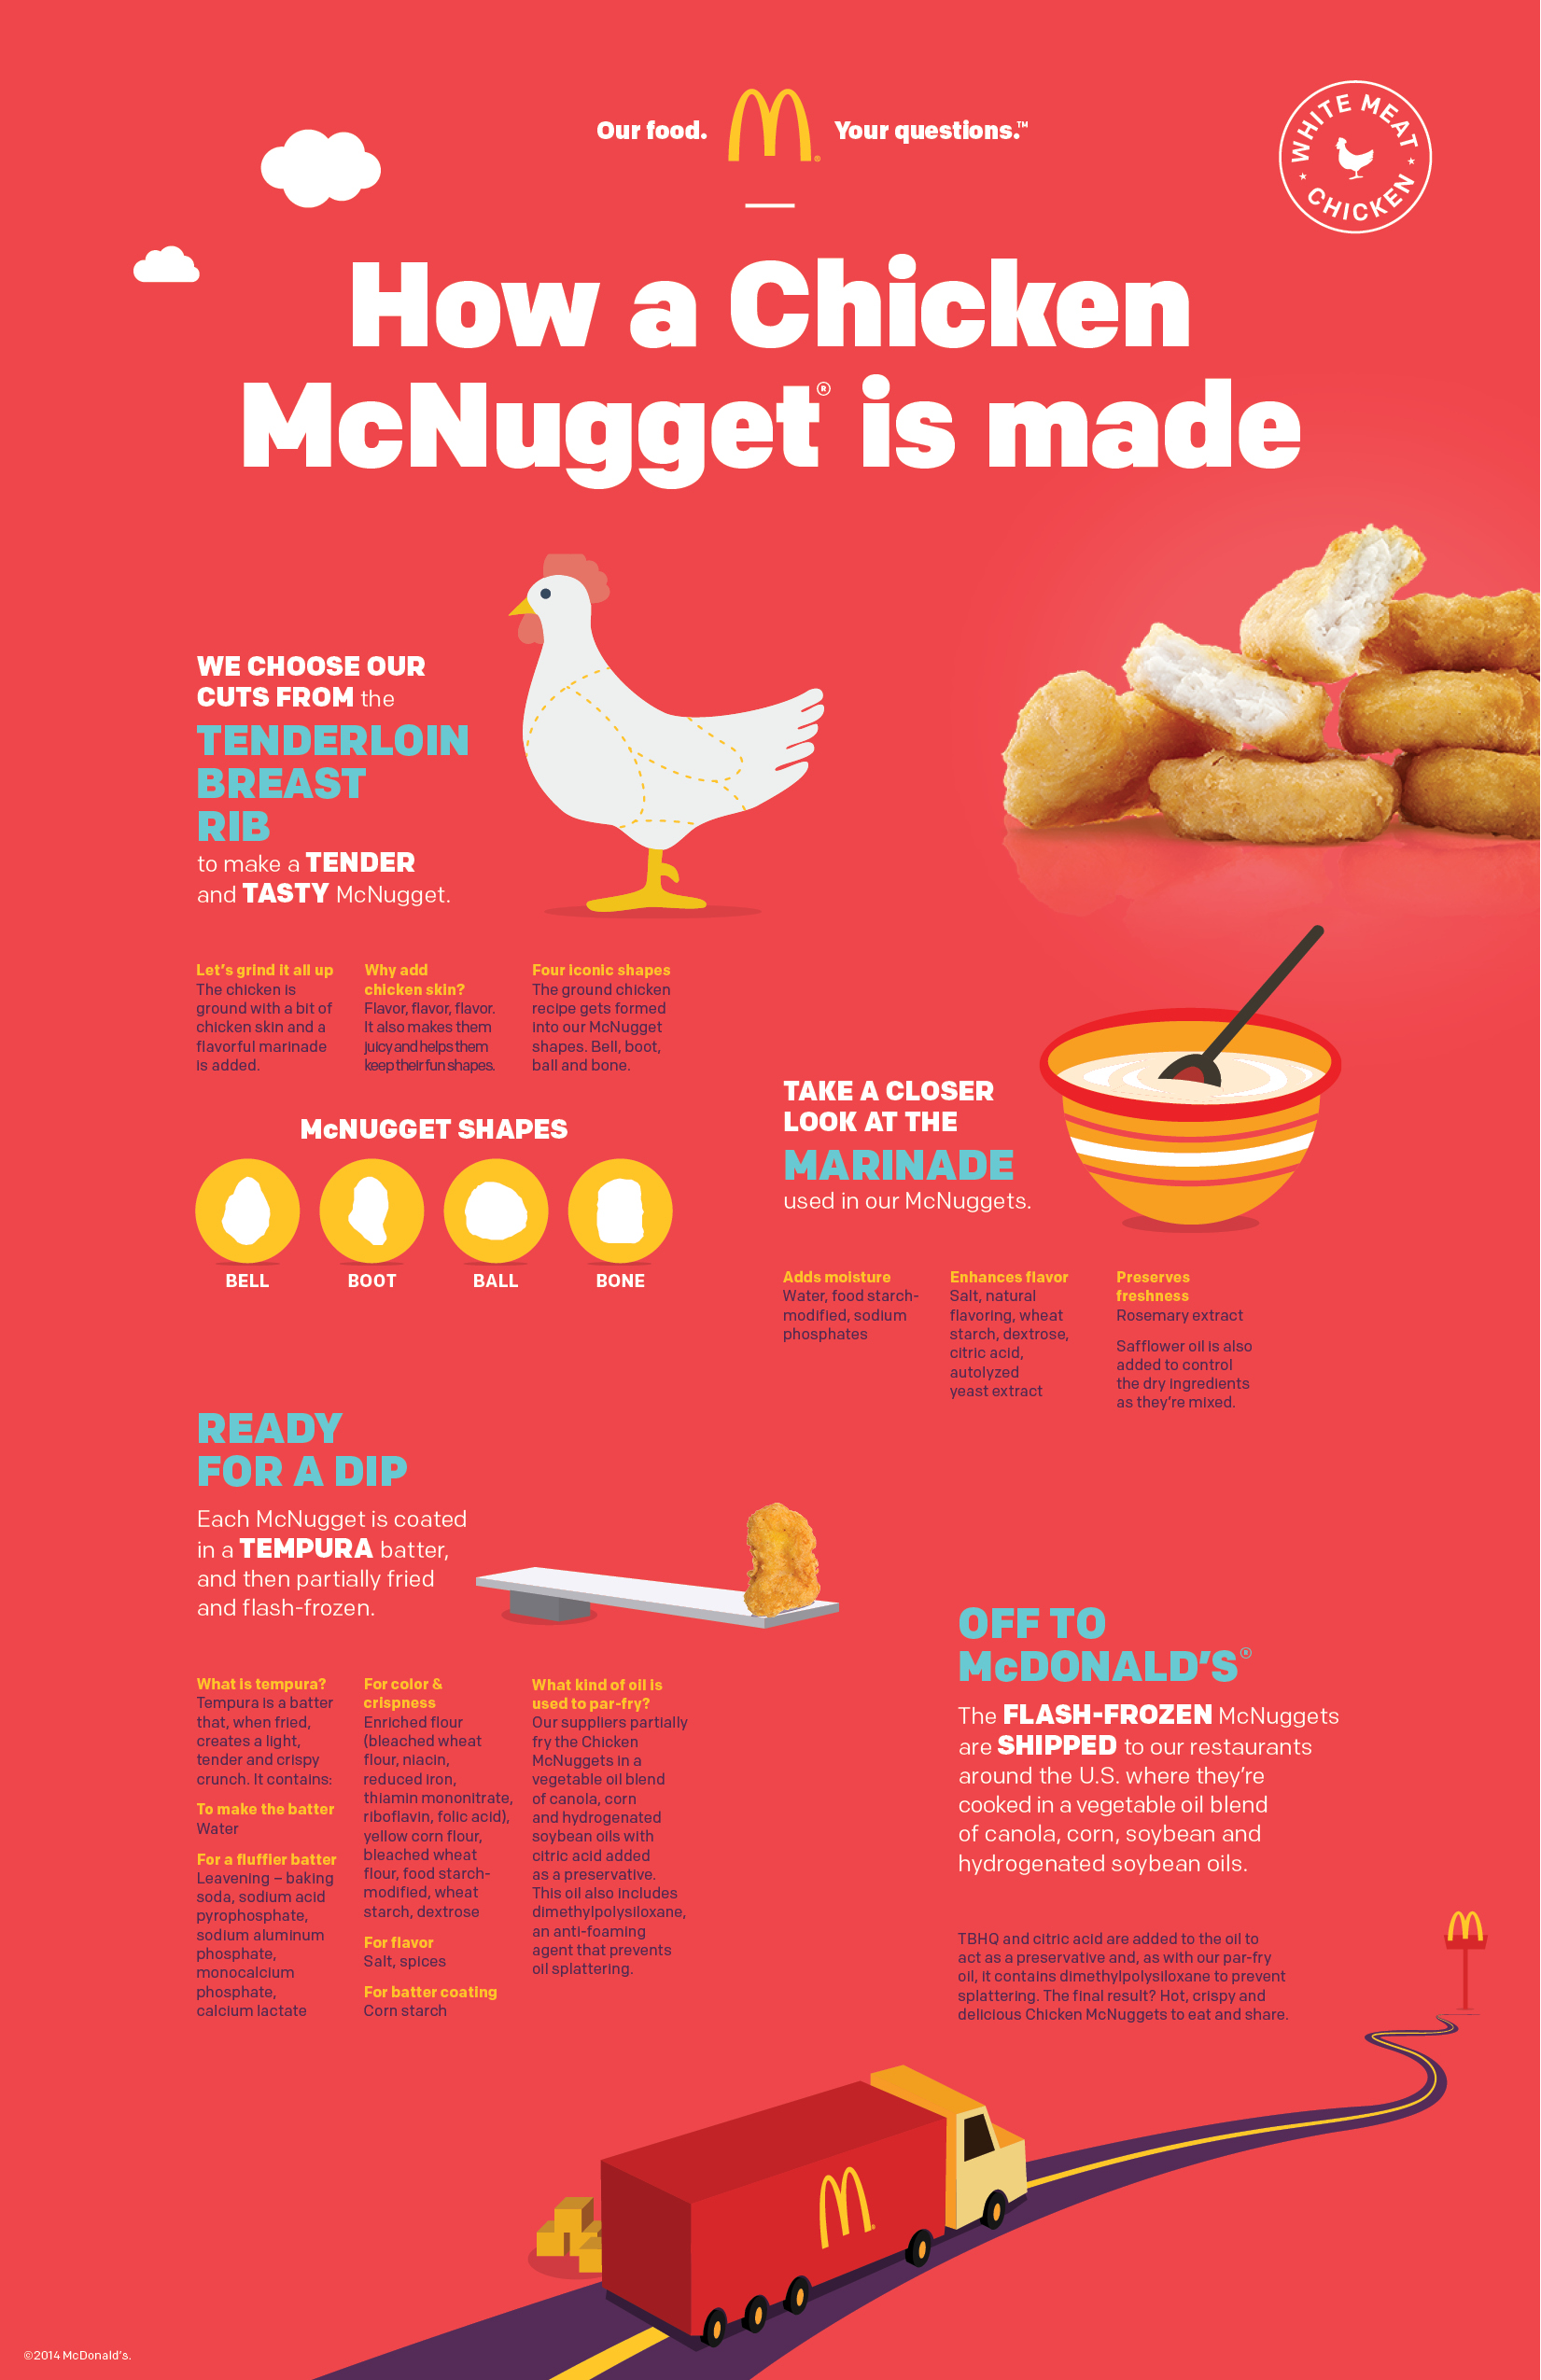 mcdonald's and kfc recipes for success Can kfc and mcdonald's boost sales and consumer goodwill in china through   already finding success in the united states, in their china franchise markets  as well  tender matches tasty recipes with tinder technology.